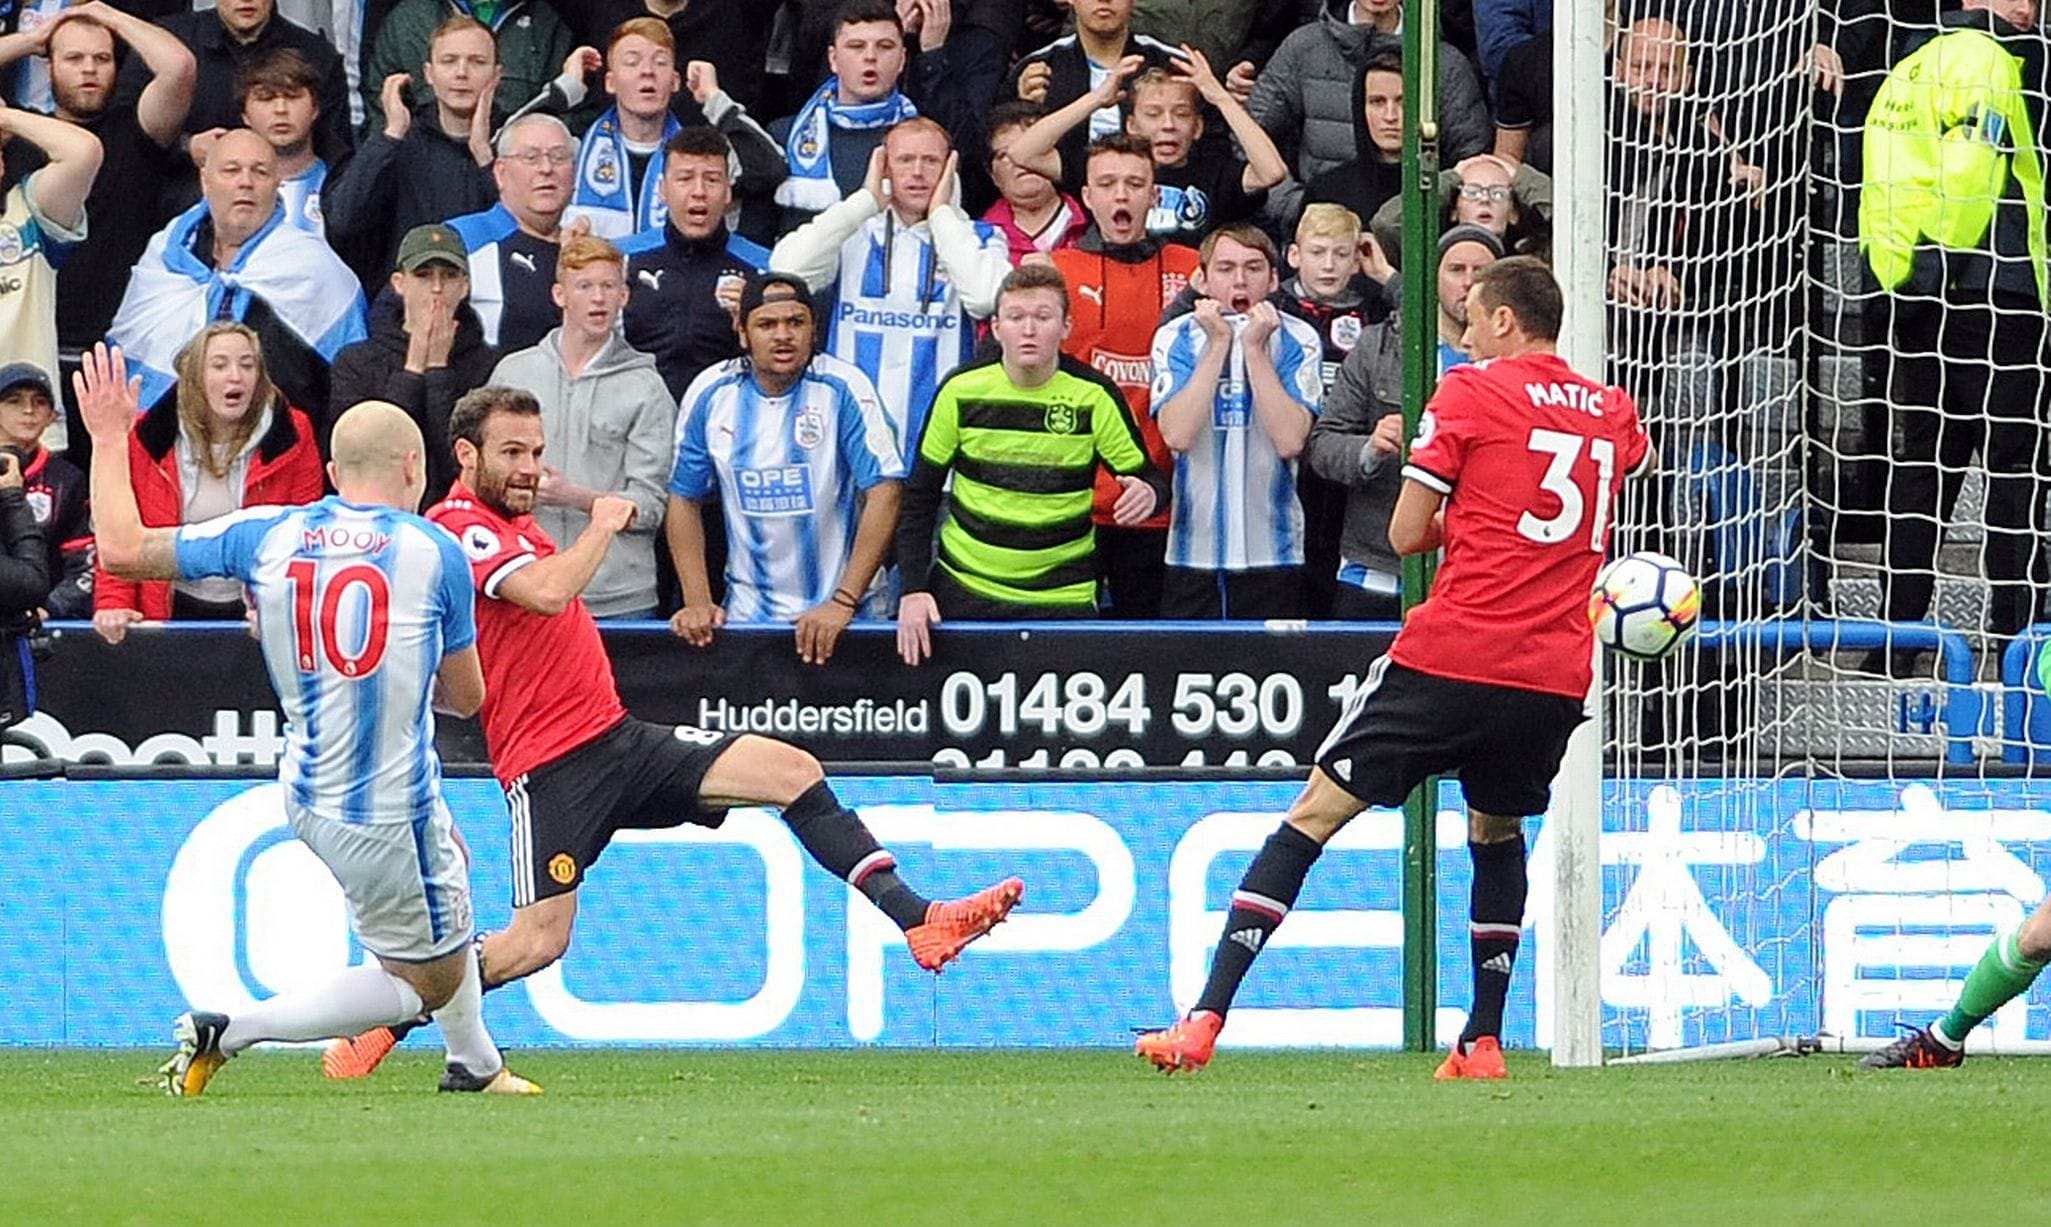 Huddersfield Town - Manchester United soccer prediction